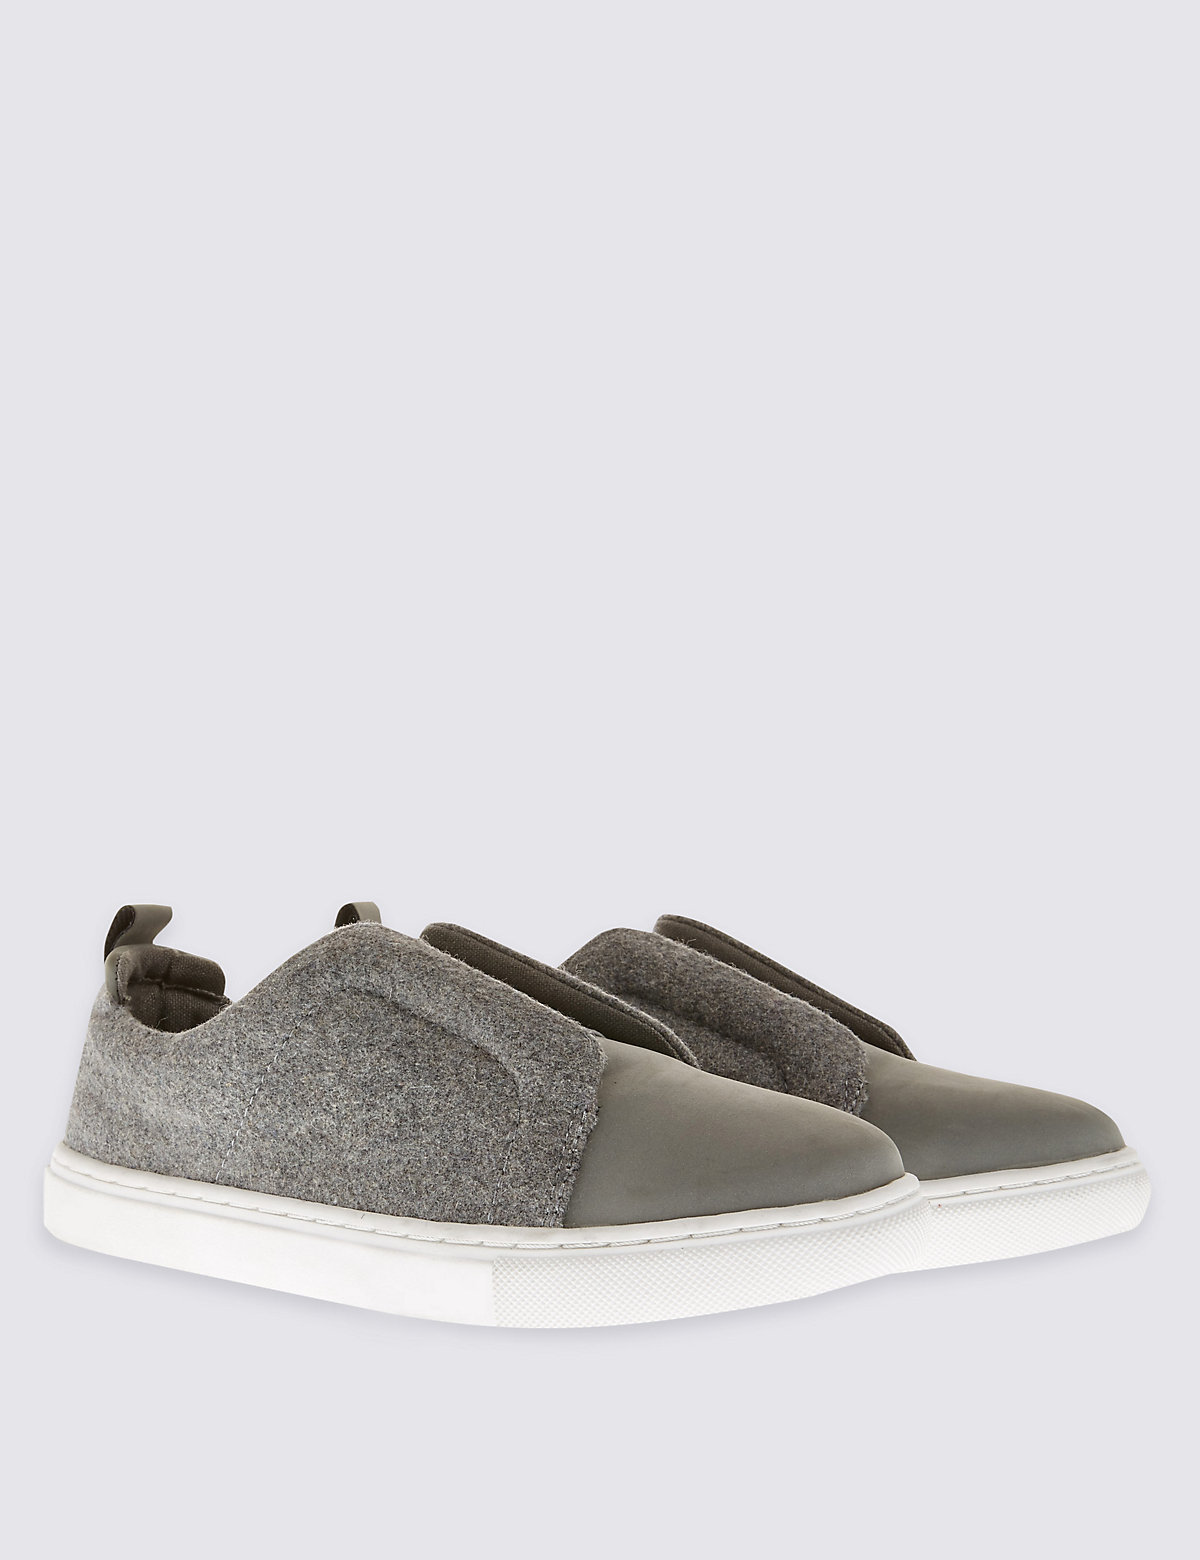 Image of M&S Collection Slip-On Elastic Trainer with Insolia Flex